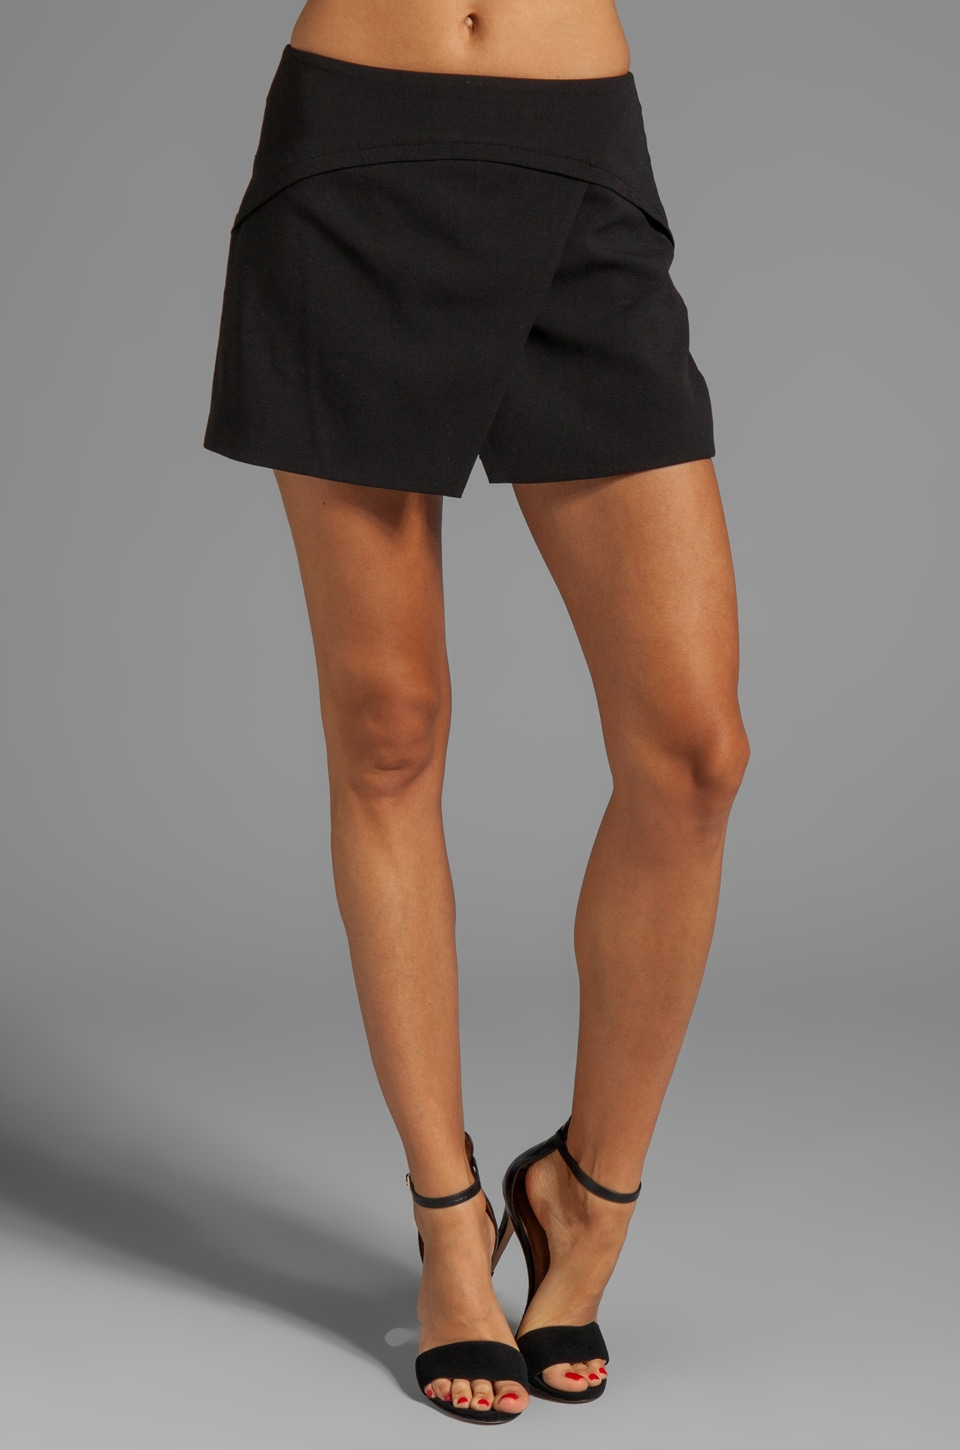 BCBGMAXAZRIA Jogging Shorts in Black